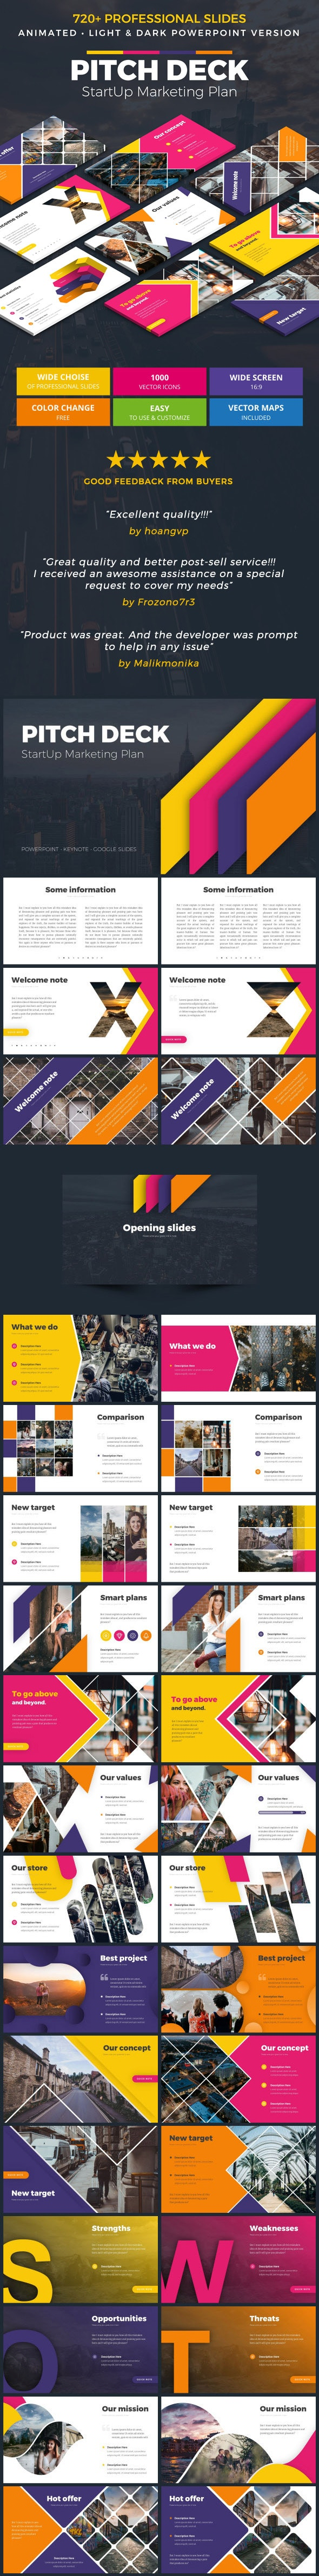 Pitch Deck Infographics Animated - Pitch Deck PowerPoint Templates